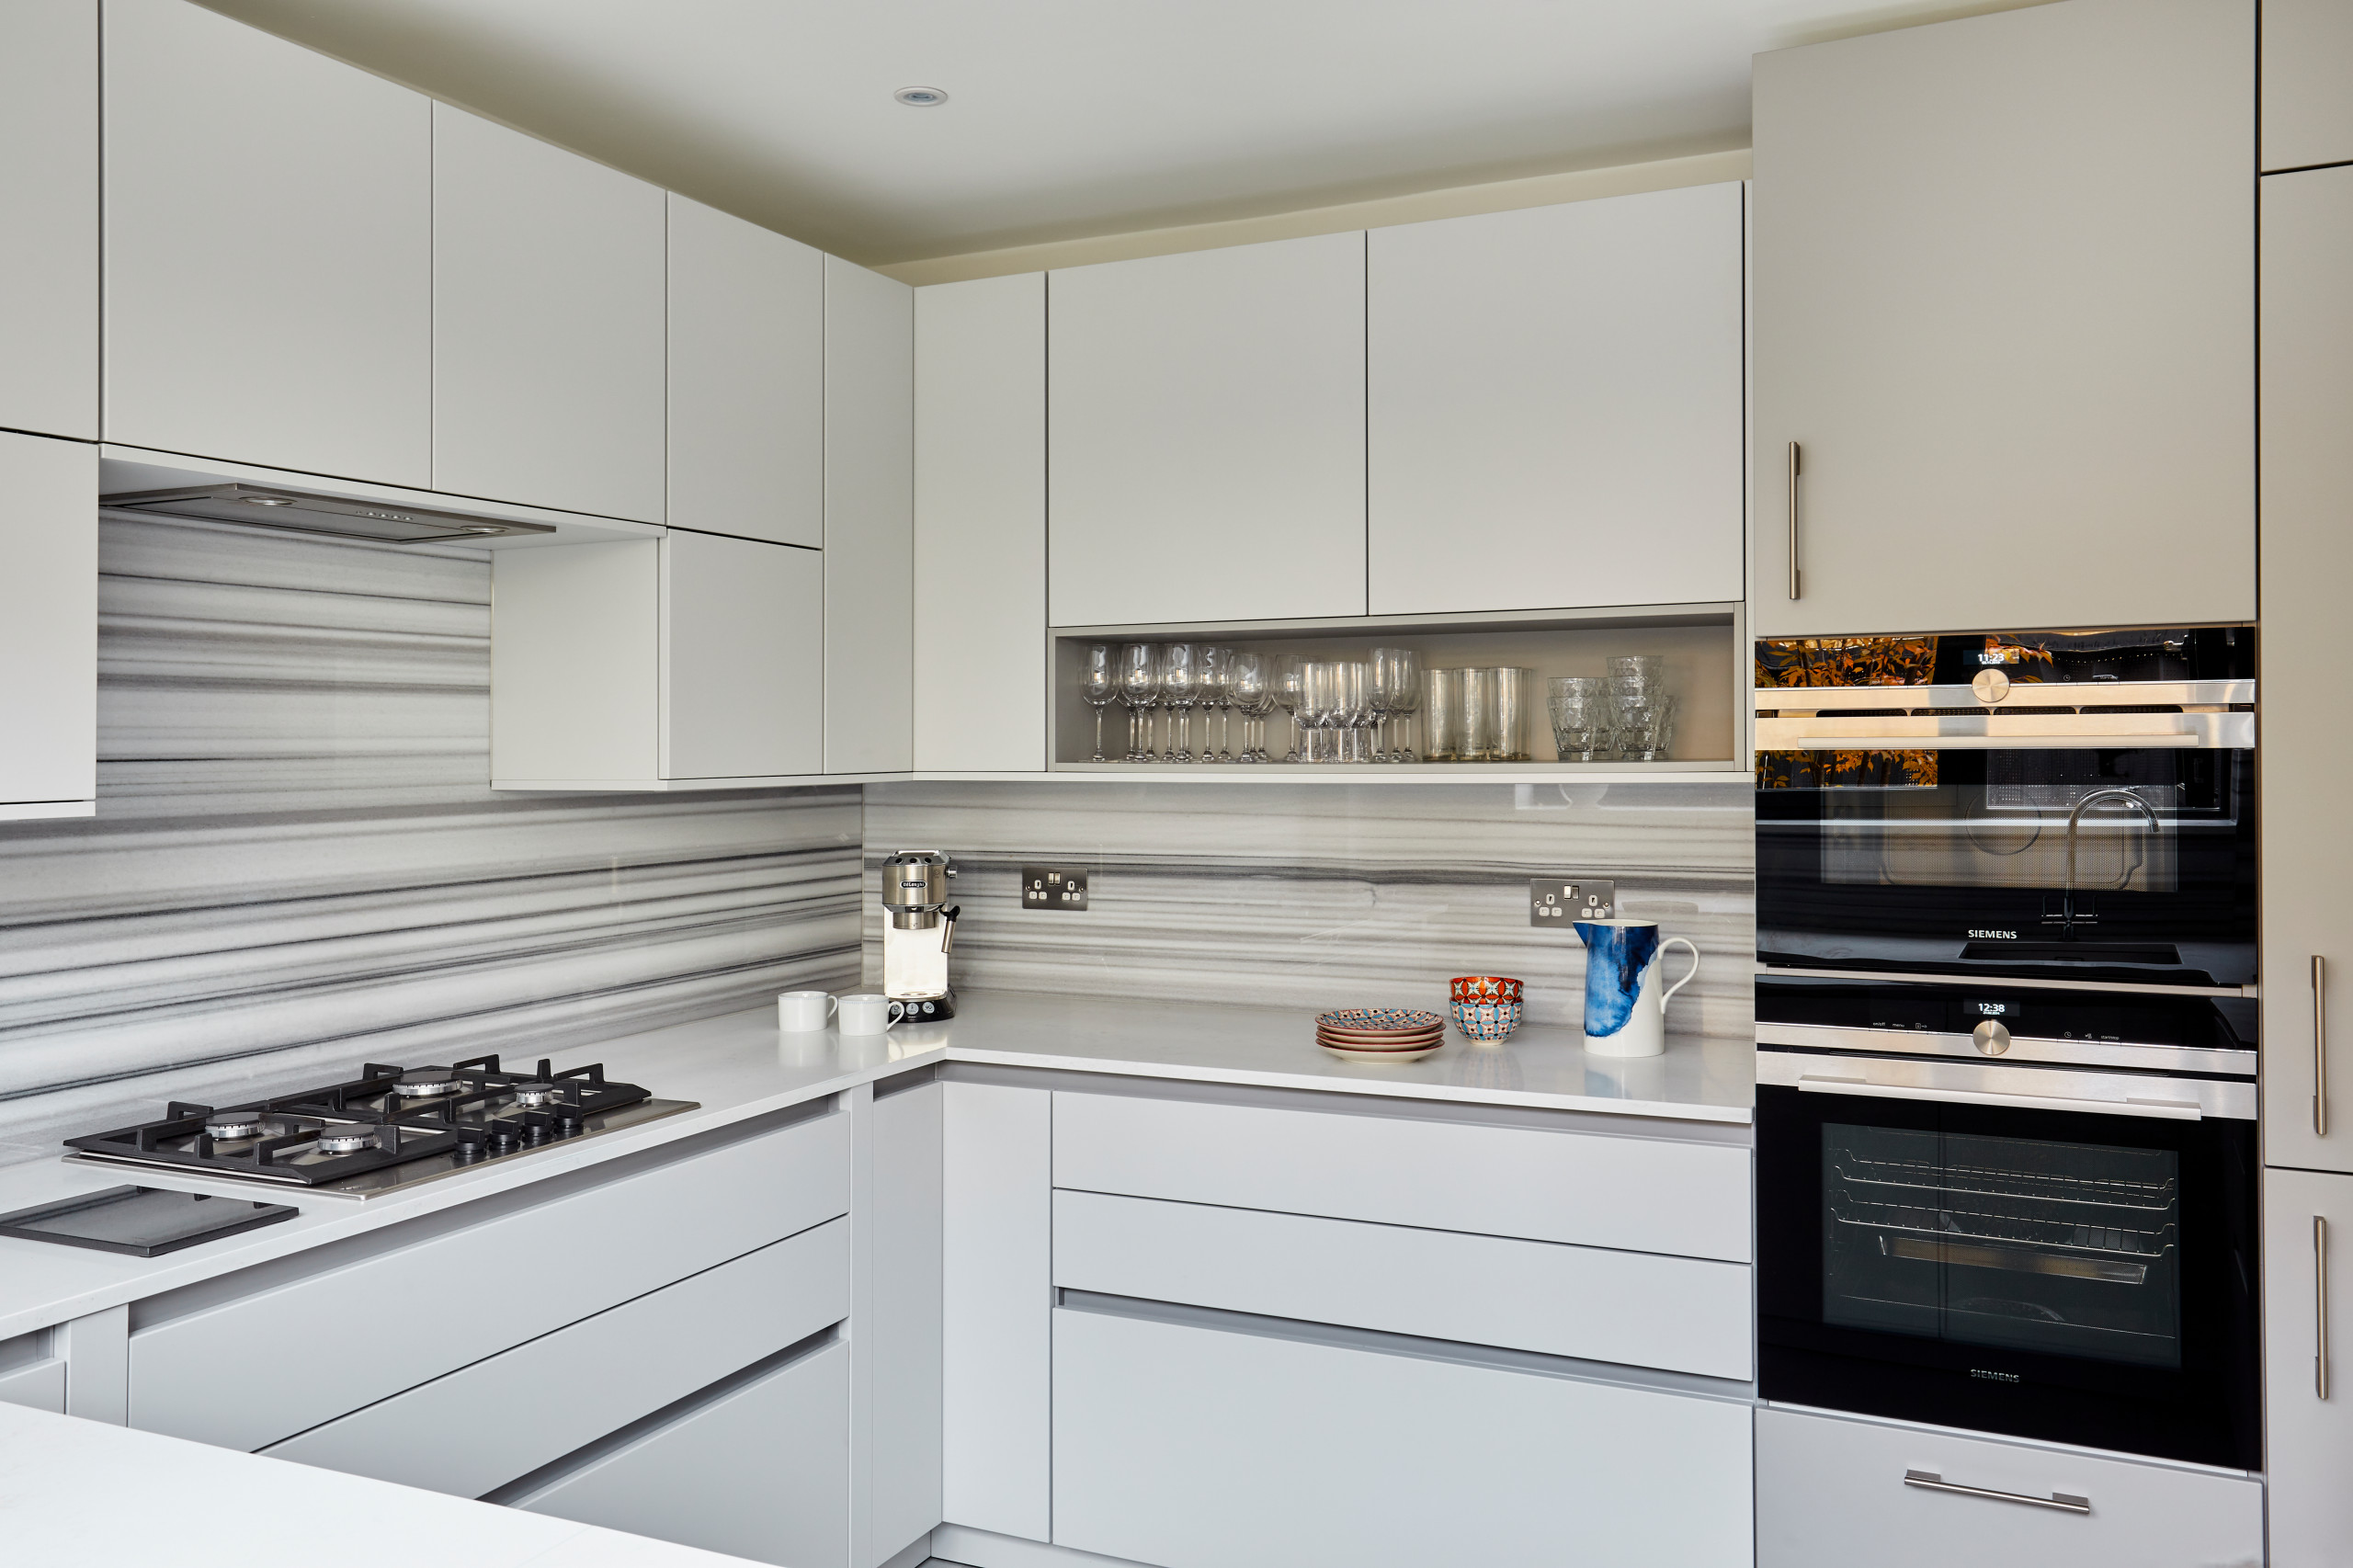 Camden Mews Kitchen and cloakroom